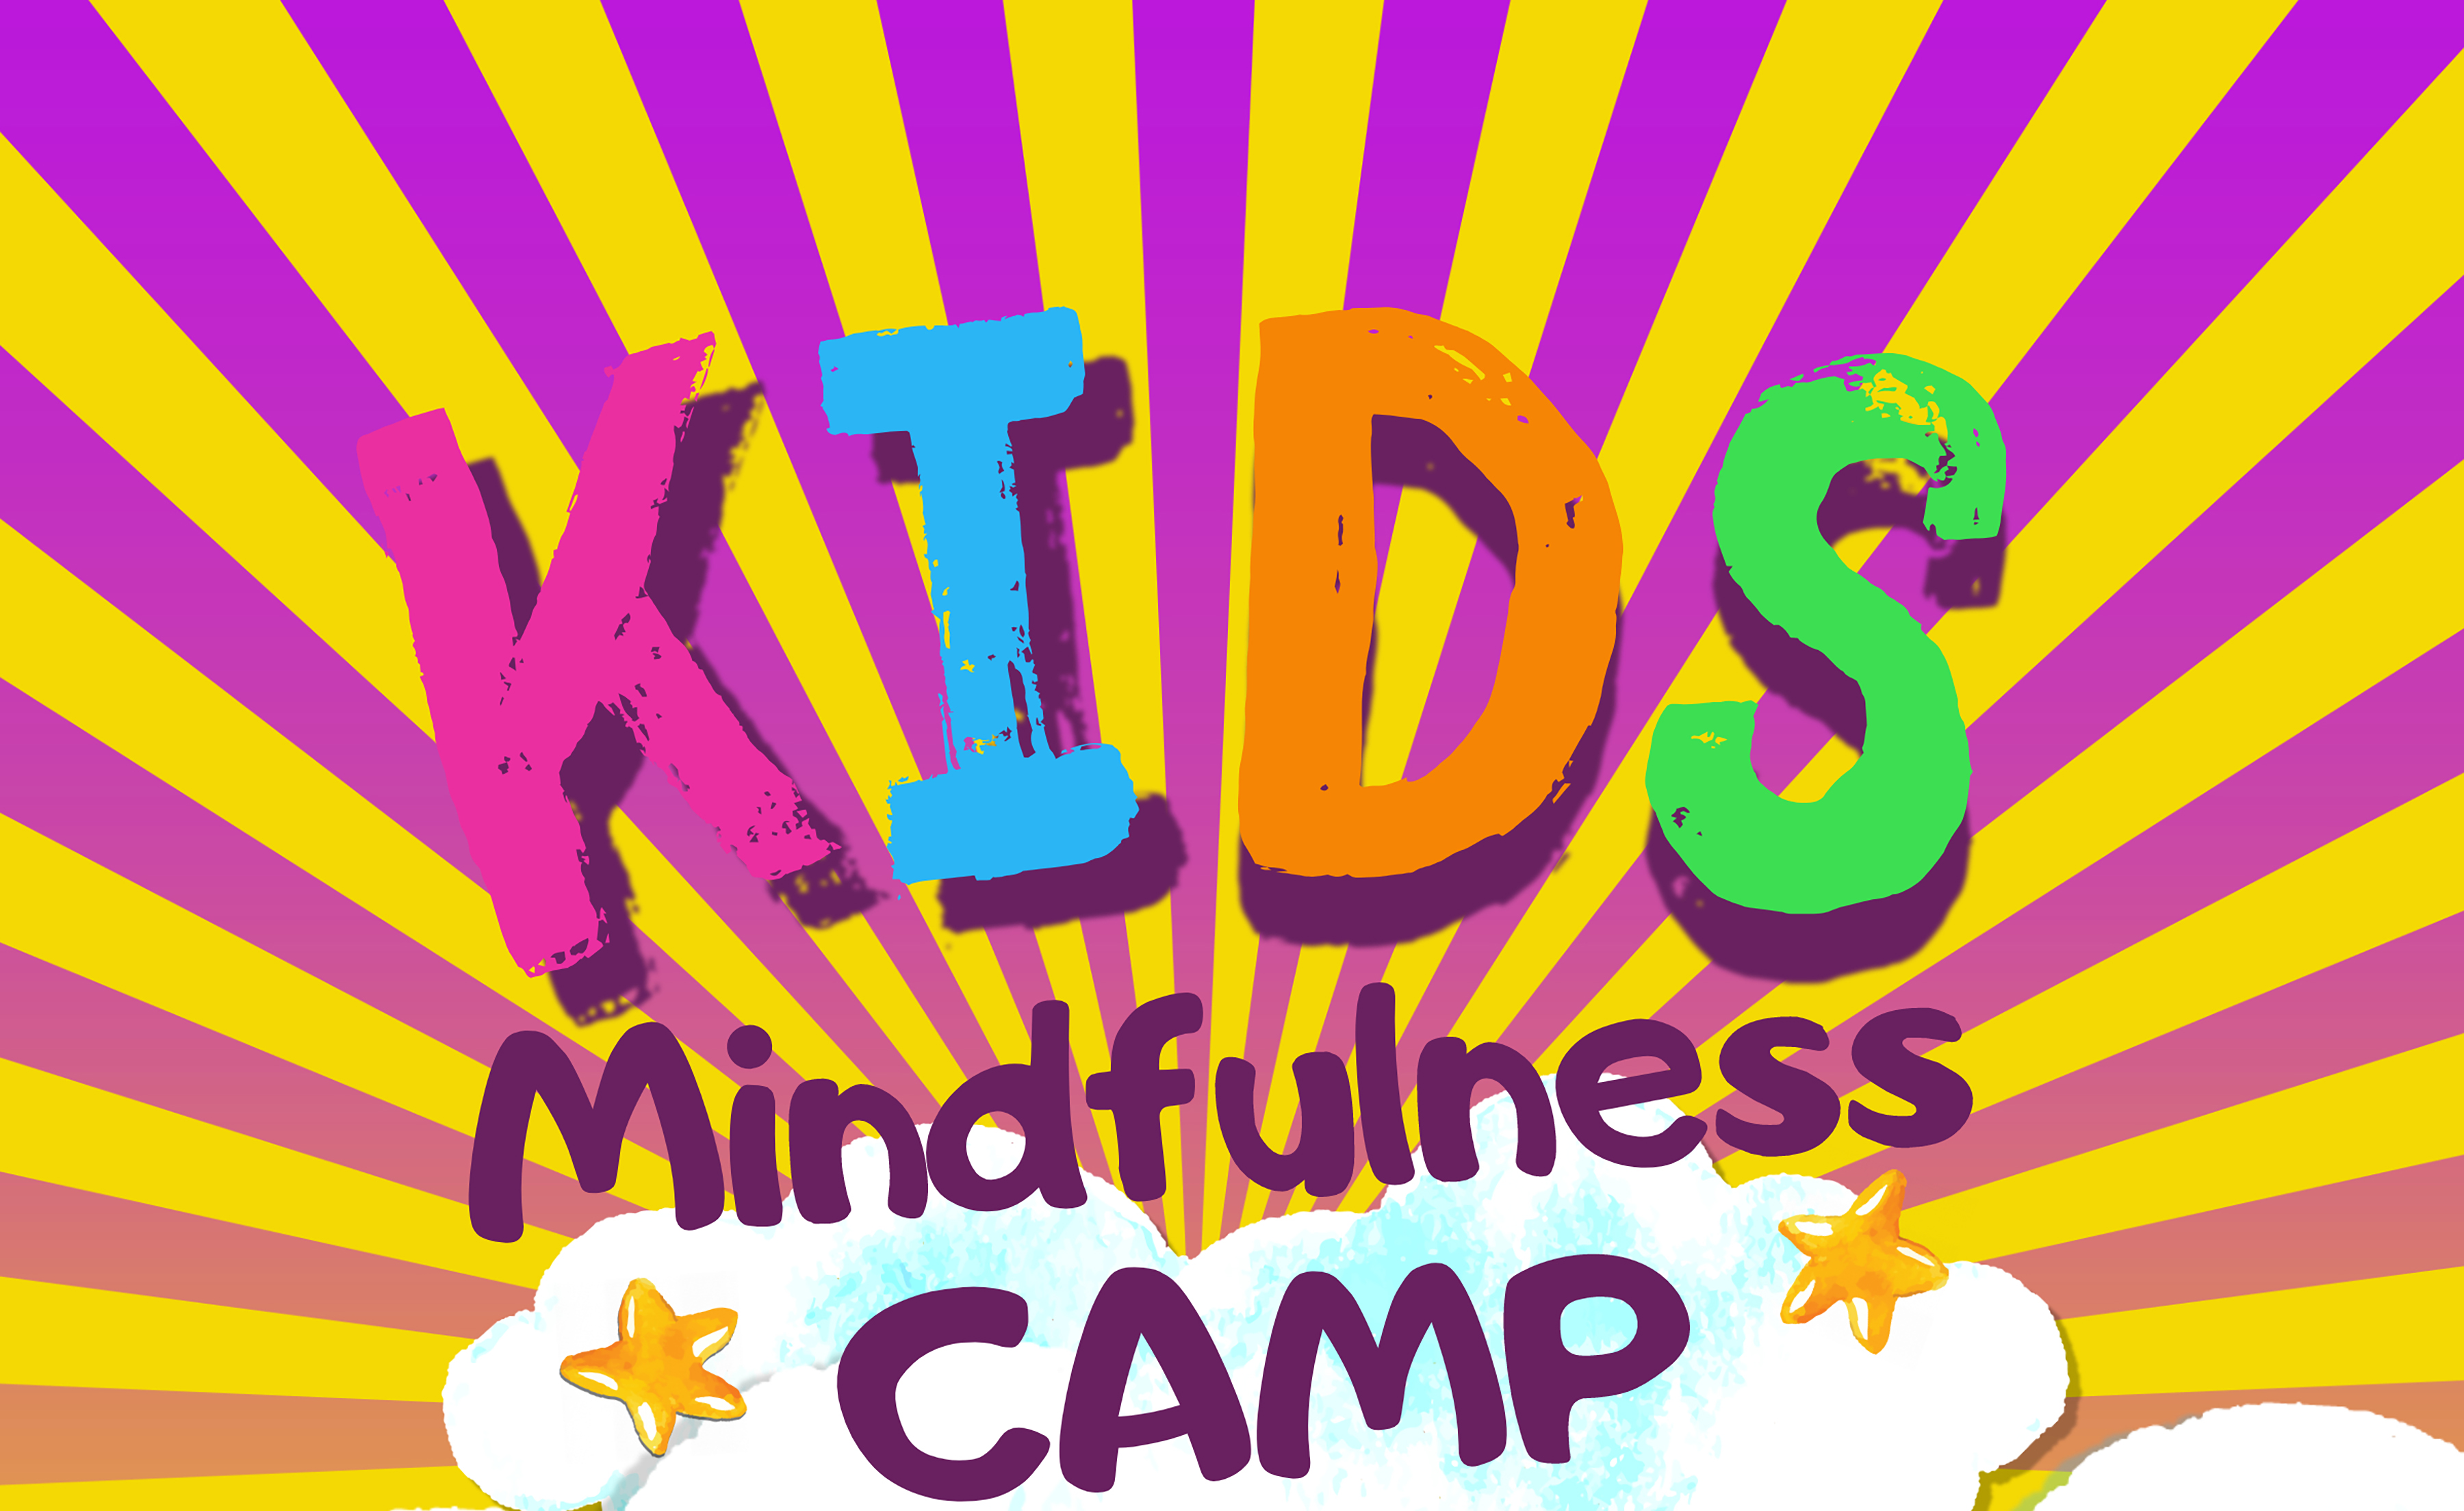 Kids Mindfulness Camp